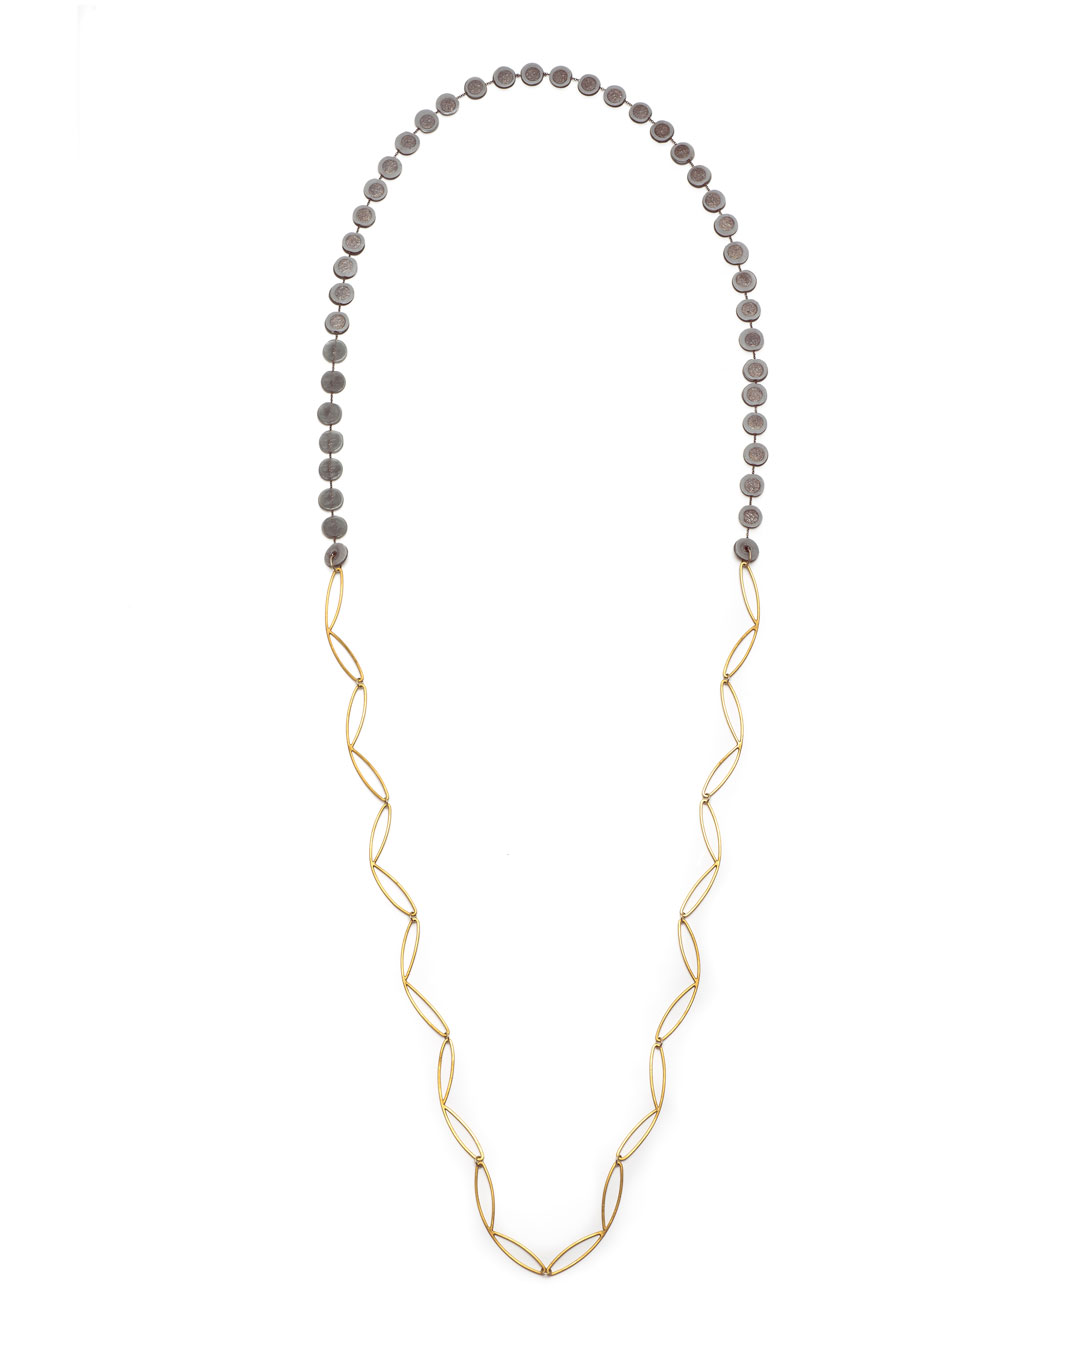 Karola Torkos, untitled, 2020, necklace; gold-plated copper, 14ct gold, oxidised silver, plastic, L 1140 mm, €460